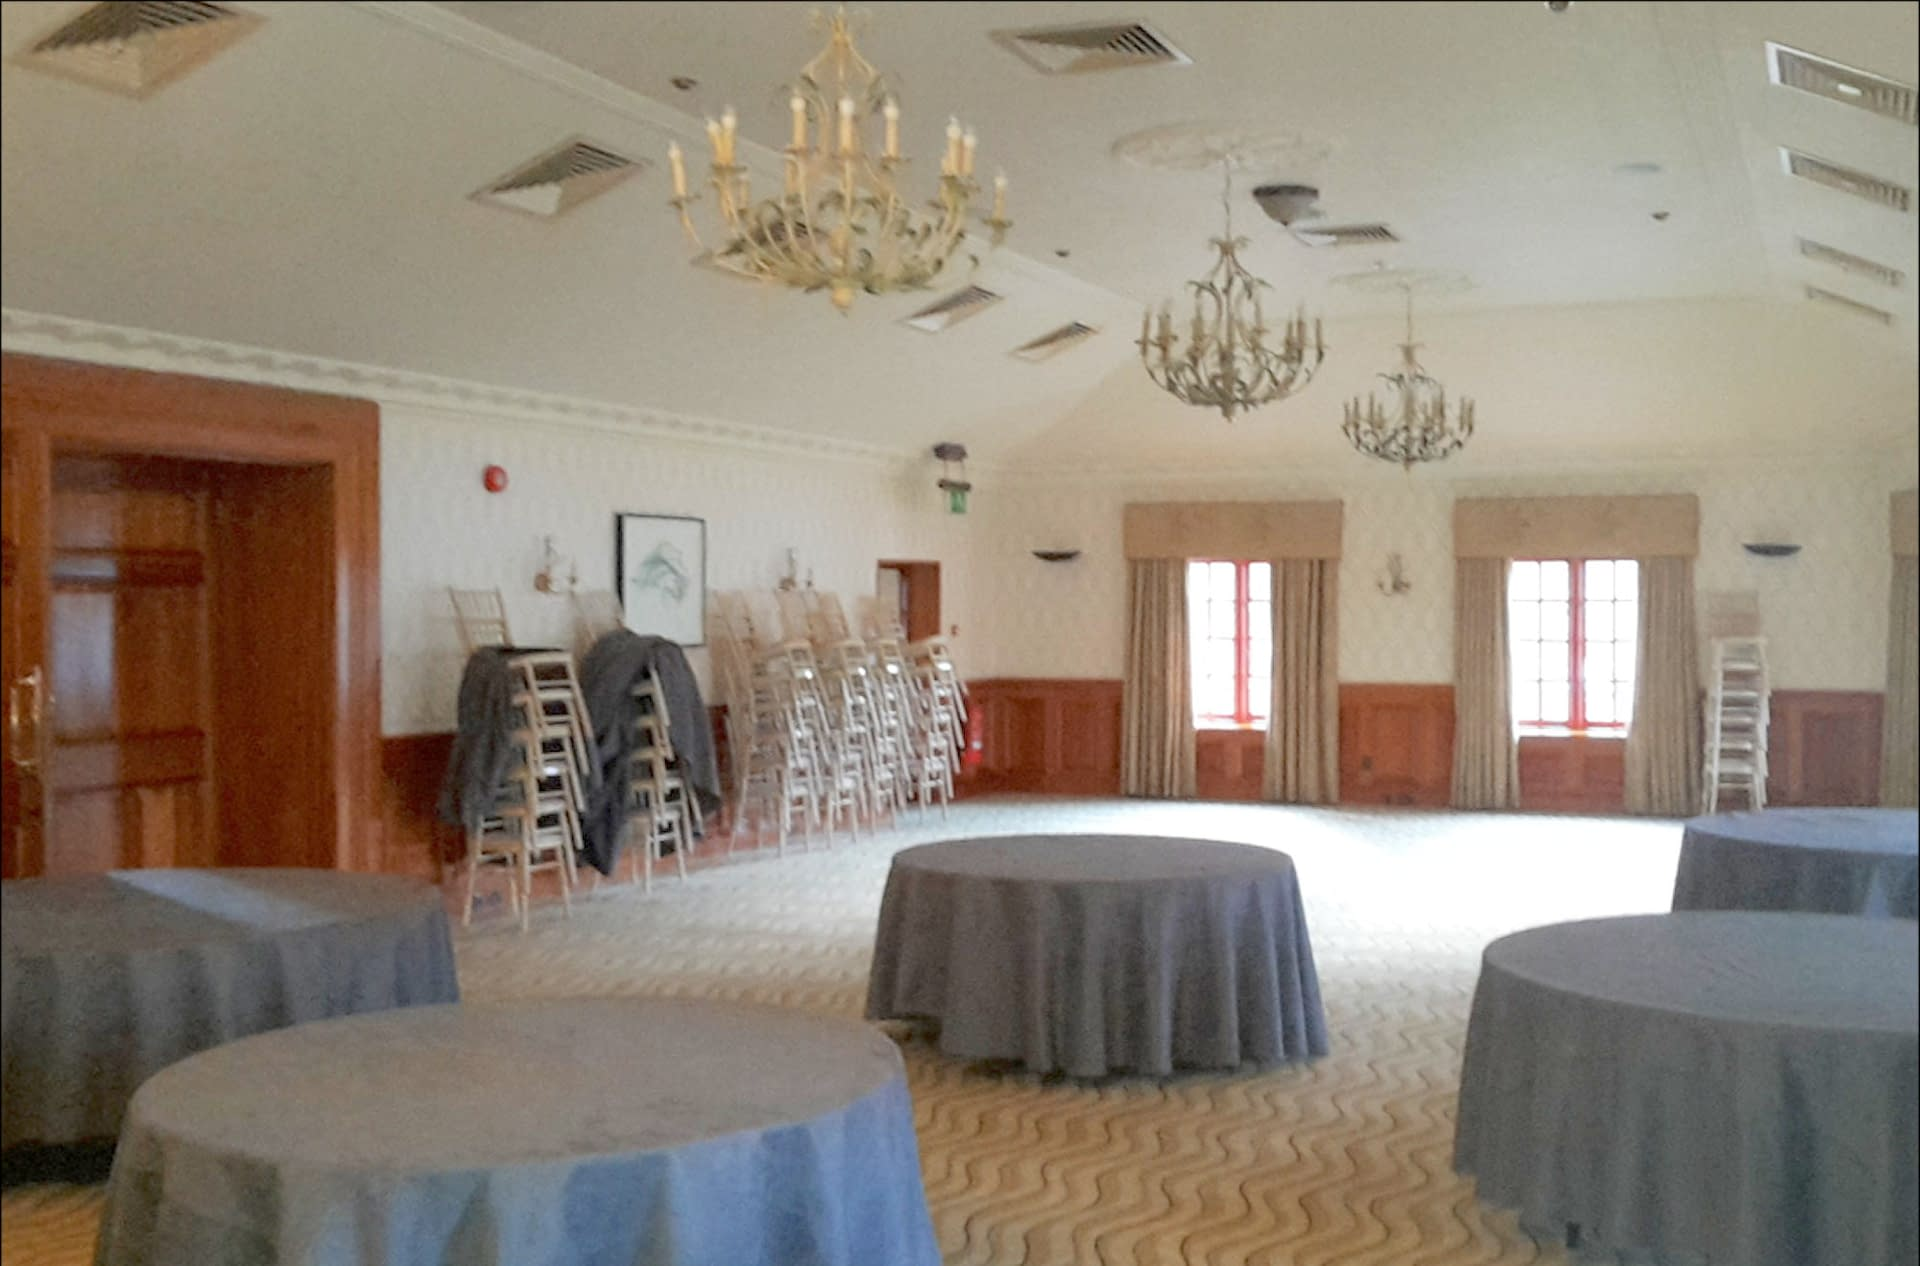 An un-decorated Balmoral Room at Pennyhill Park wedding venue UK awaiting event planning experts for a private event